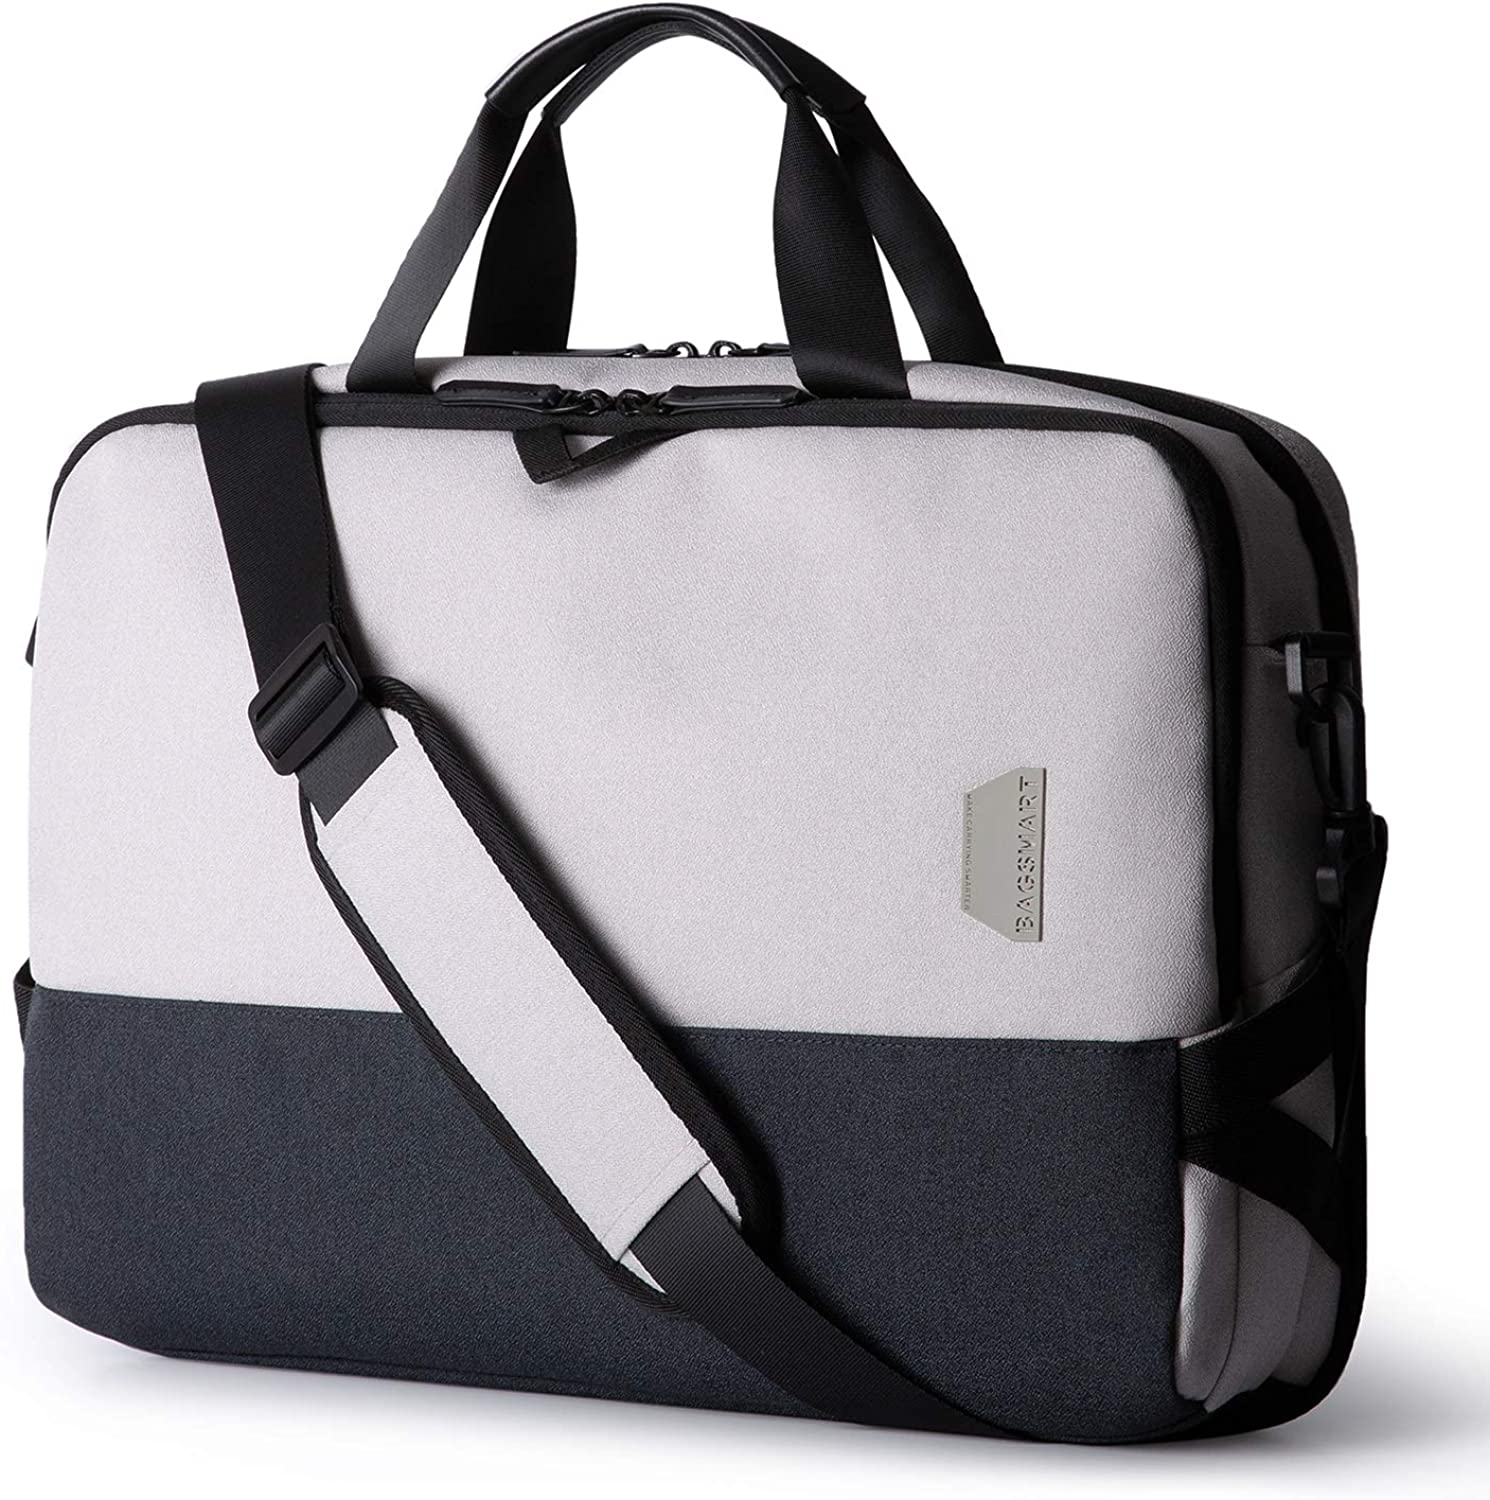 Laptop Bag,BAGSMART 15.6 Inch Laptop Messenger Shoulder Bag Briefcase